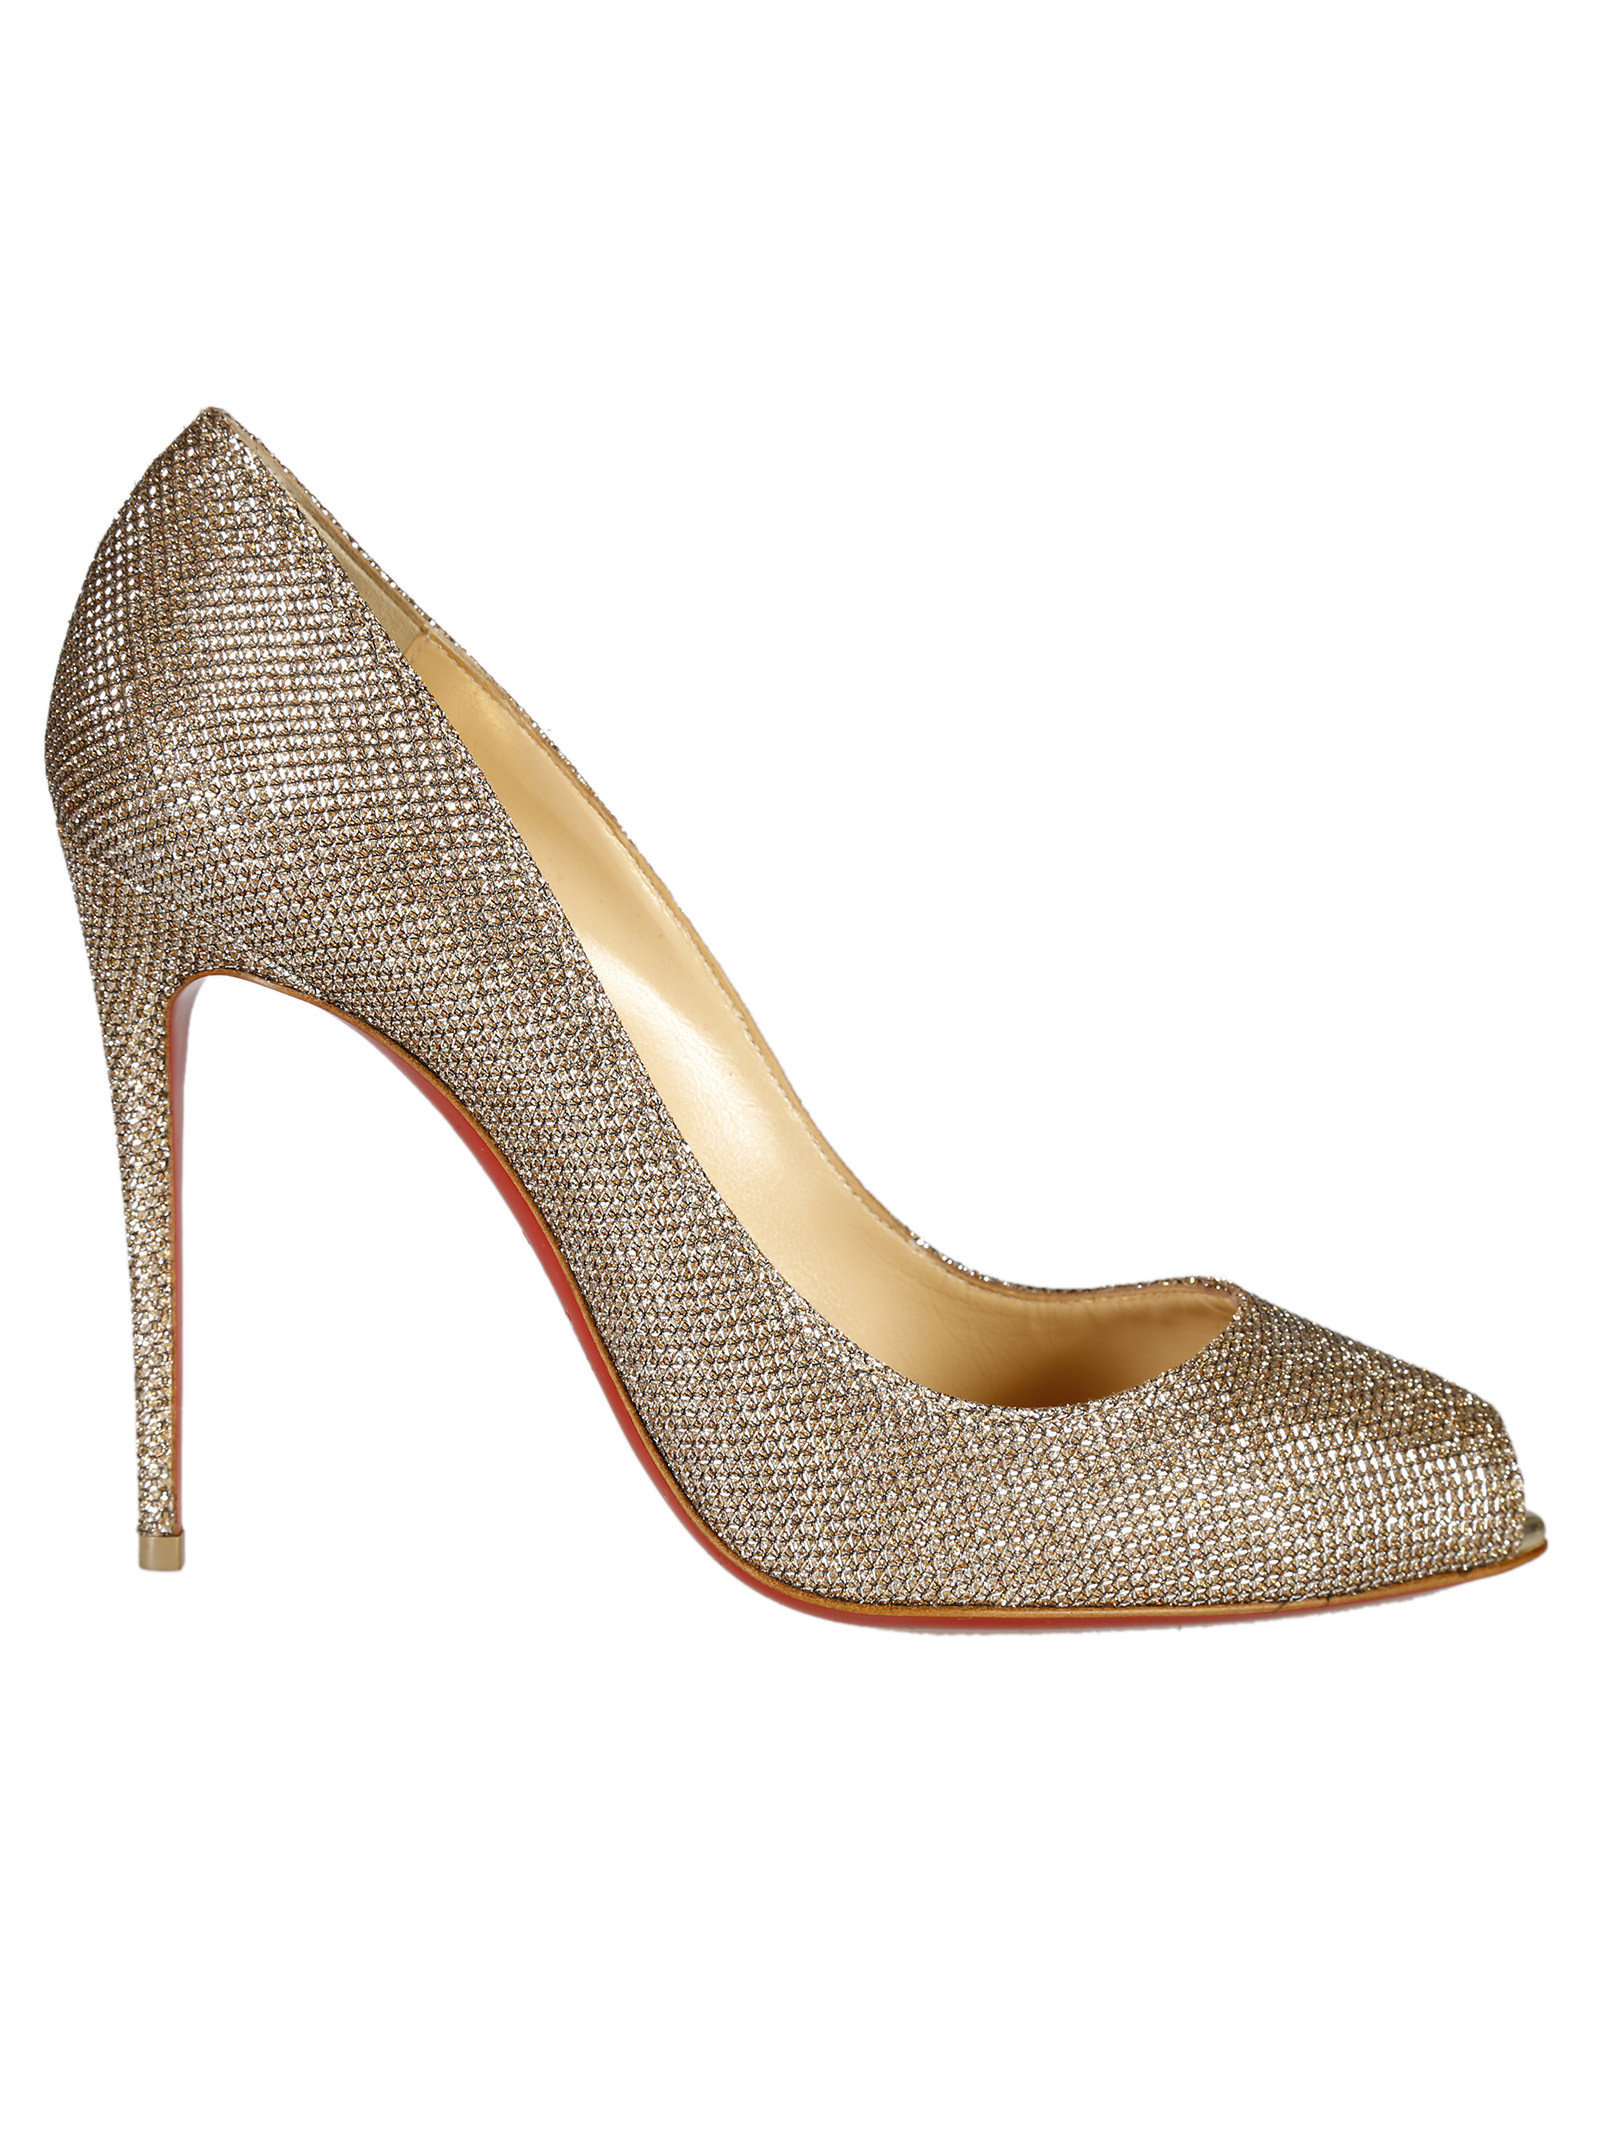 rent louboutin shoes nyc hours   2016 Christian Louboutin Outlet